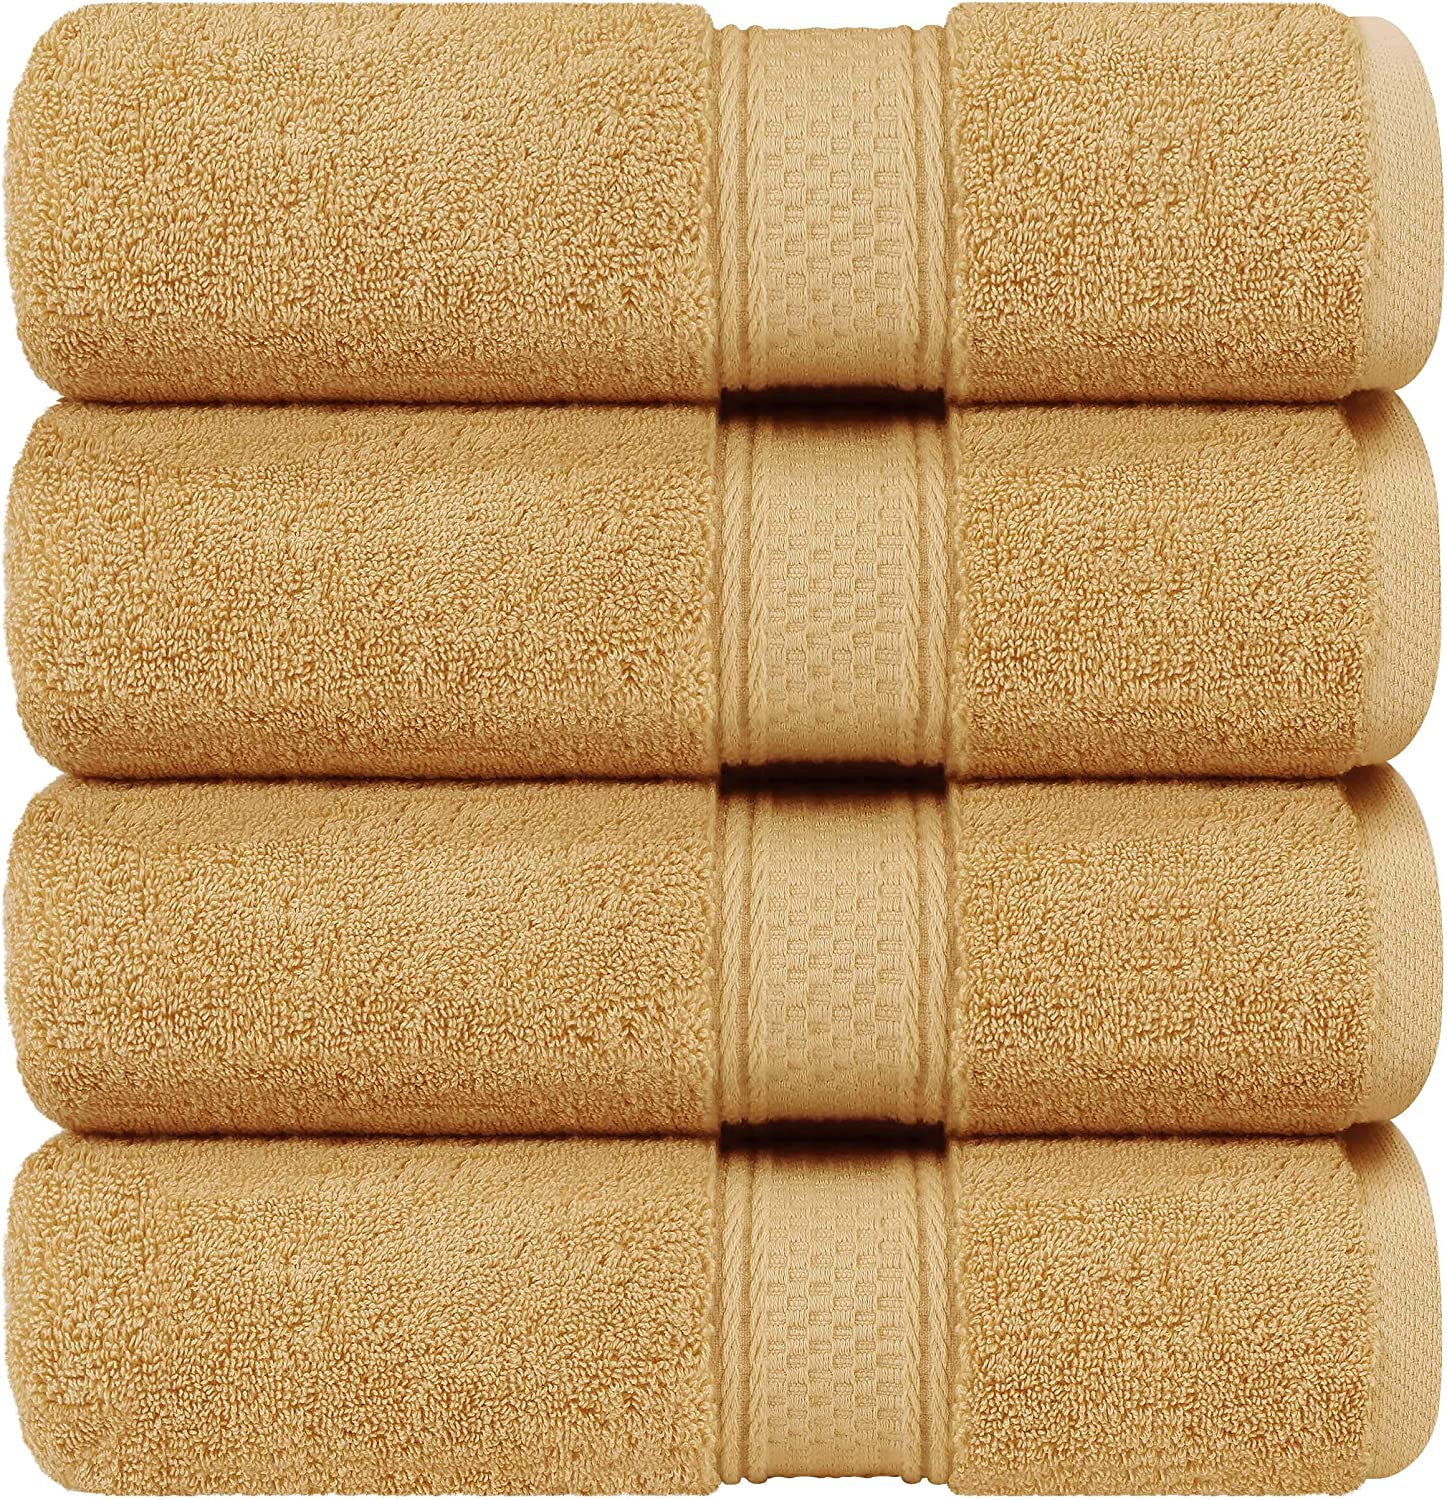 Bath Towels Set Highly Absorbent 4-Pack Beige Soft Feel Towels Premium 600 GSM 100/% Ring Spun Cotton Quick Dry Perfect for Daily Use Utopia Towels